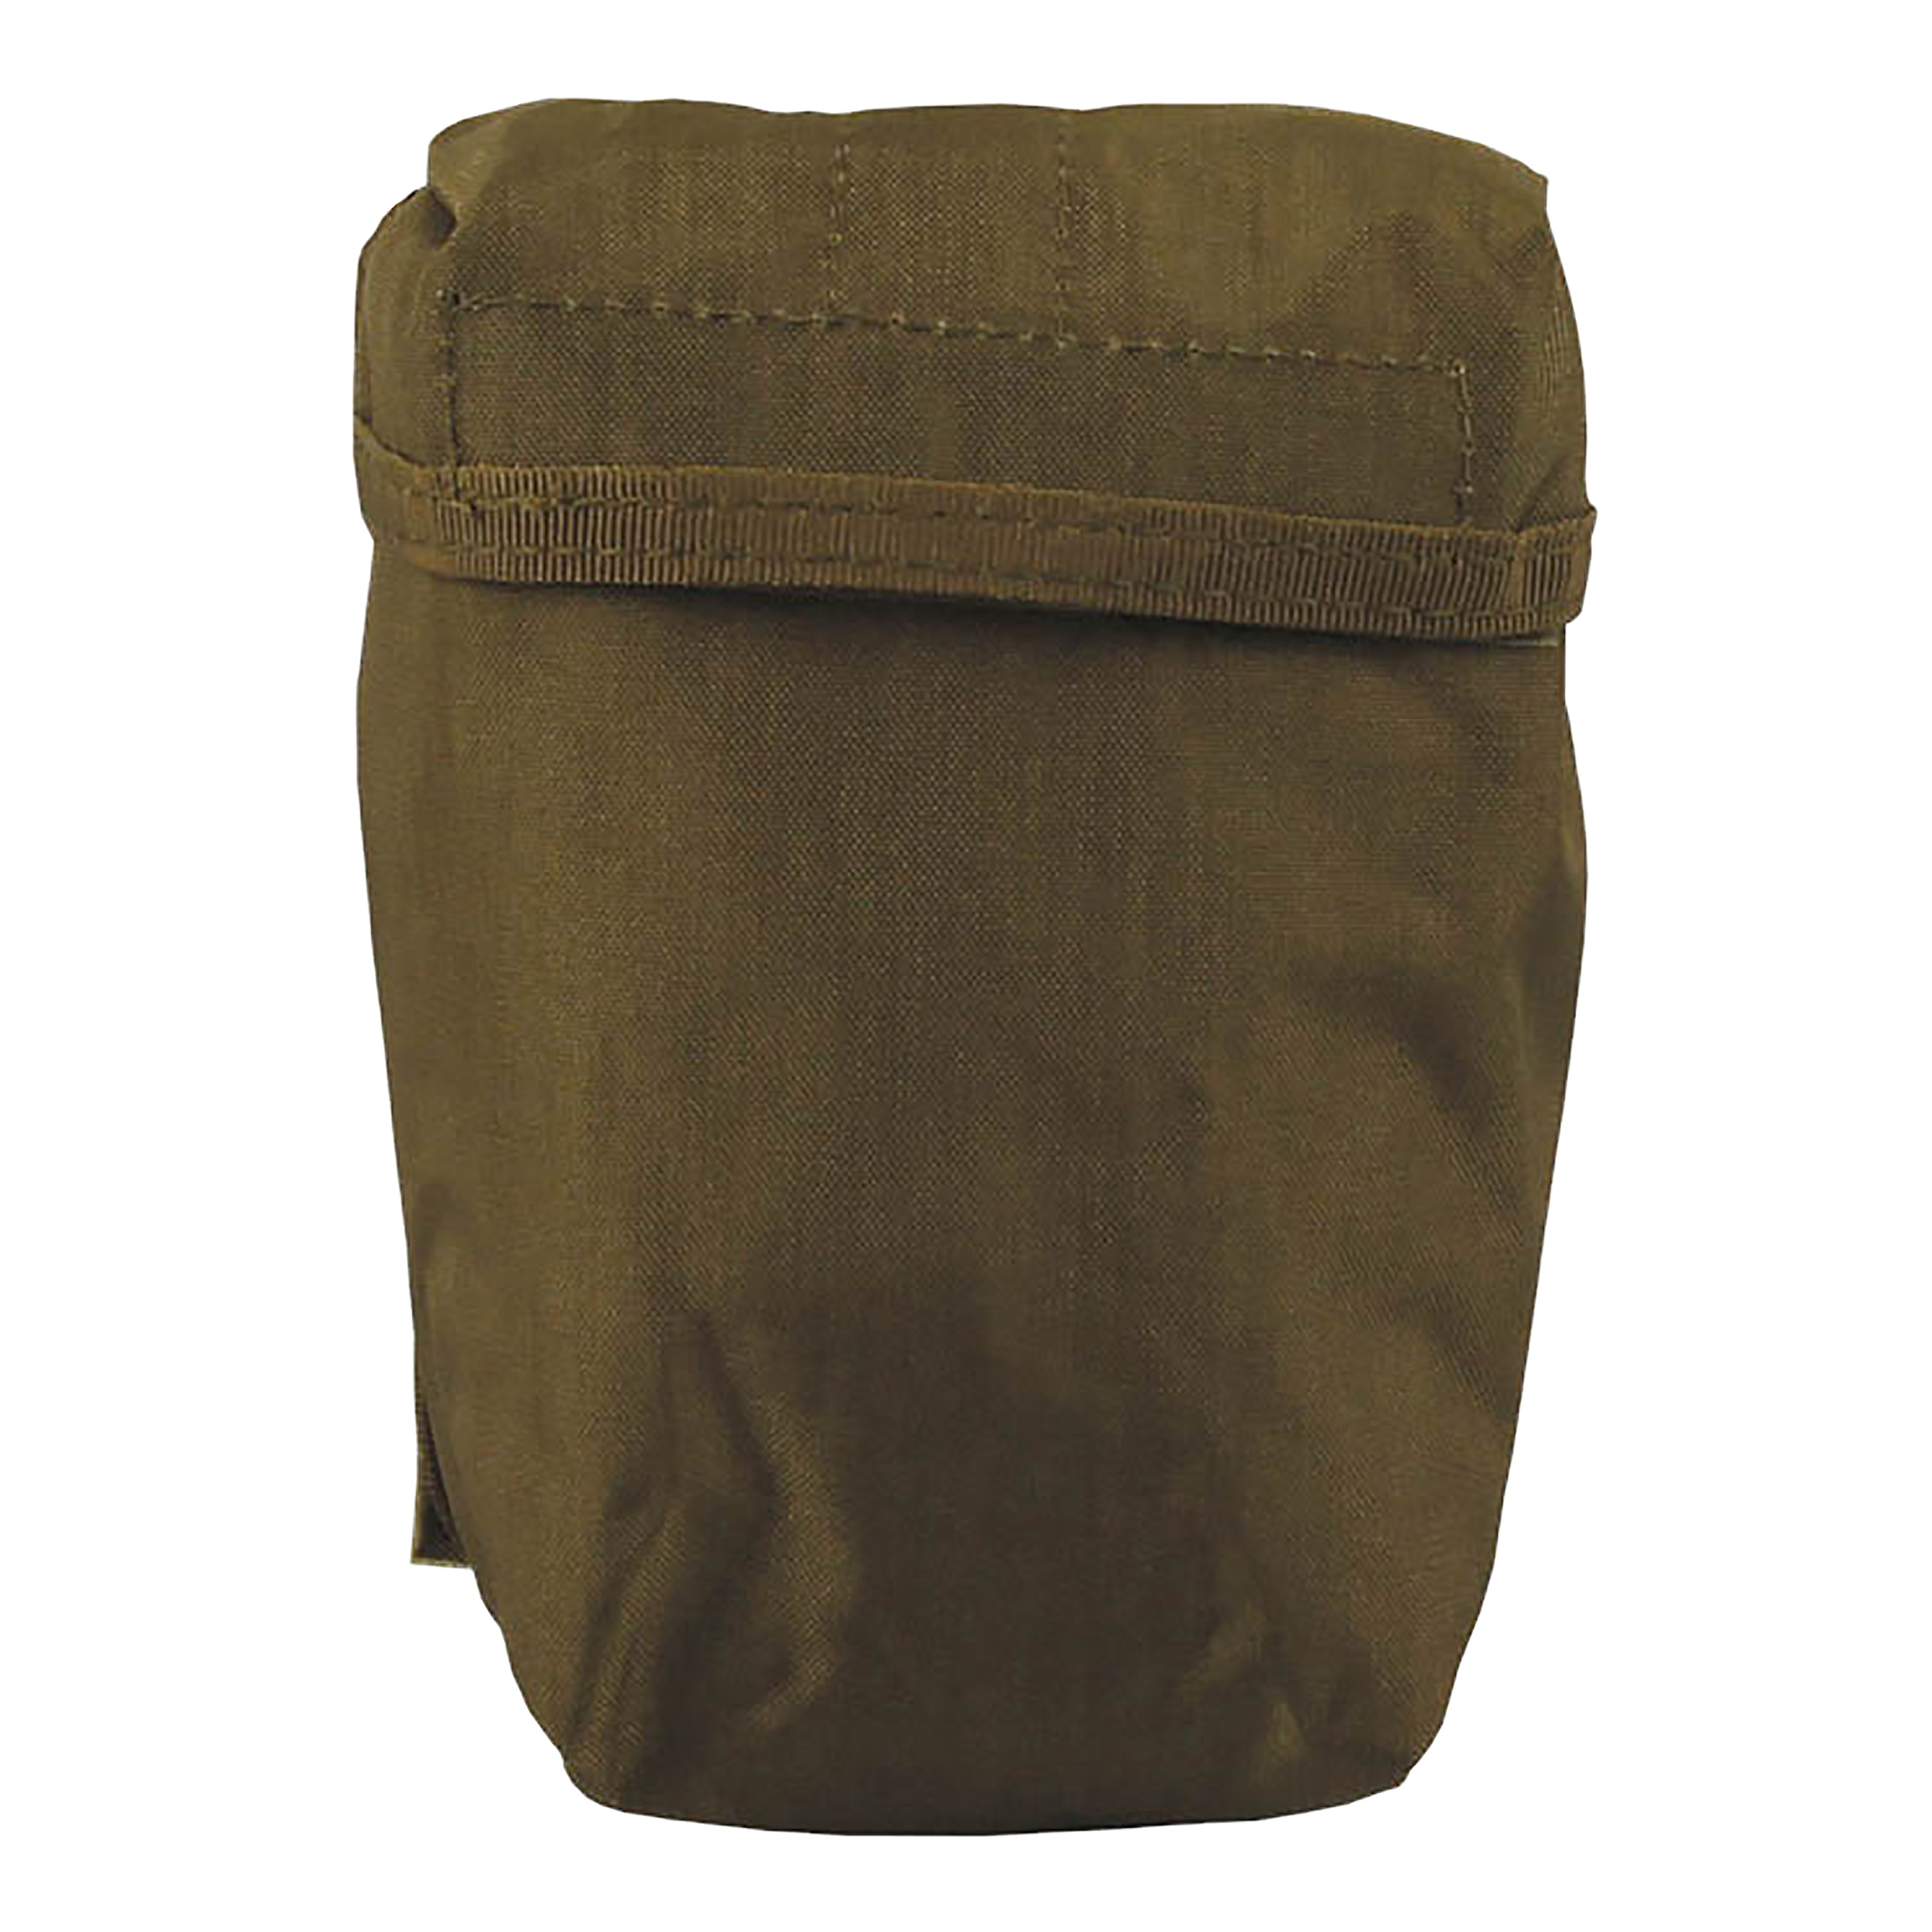 MFH Universal Pouch Mission IV Velcro System coyote tan